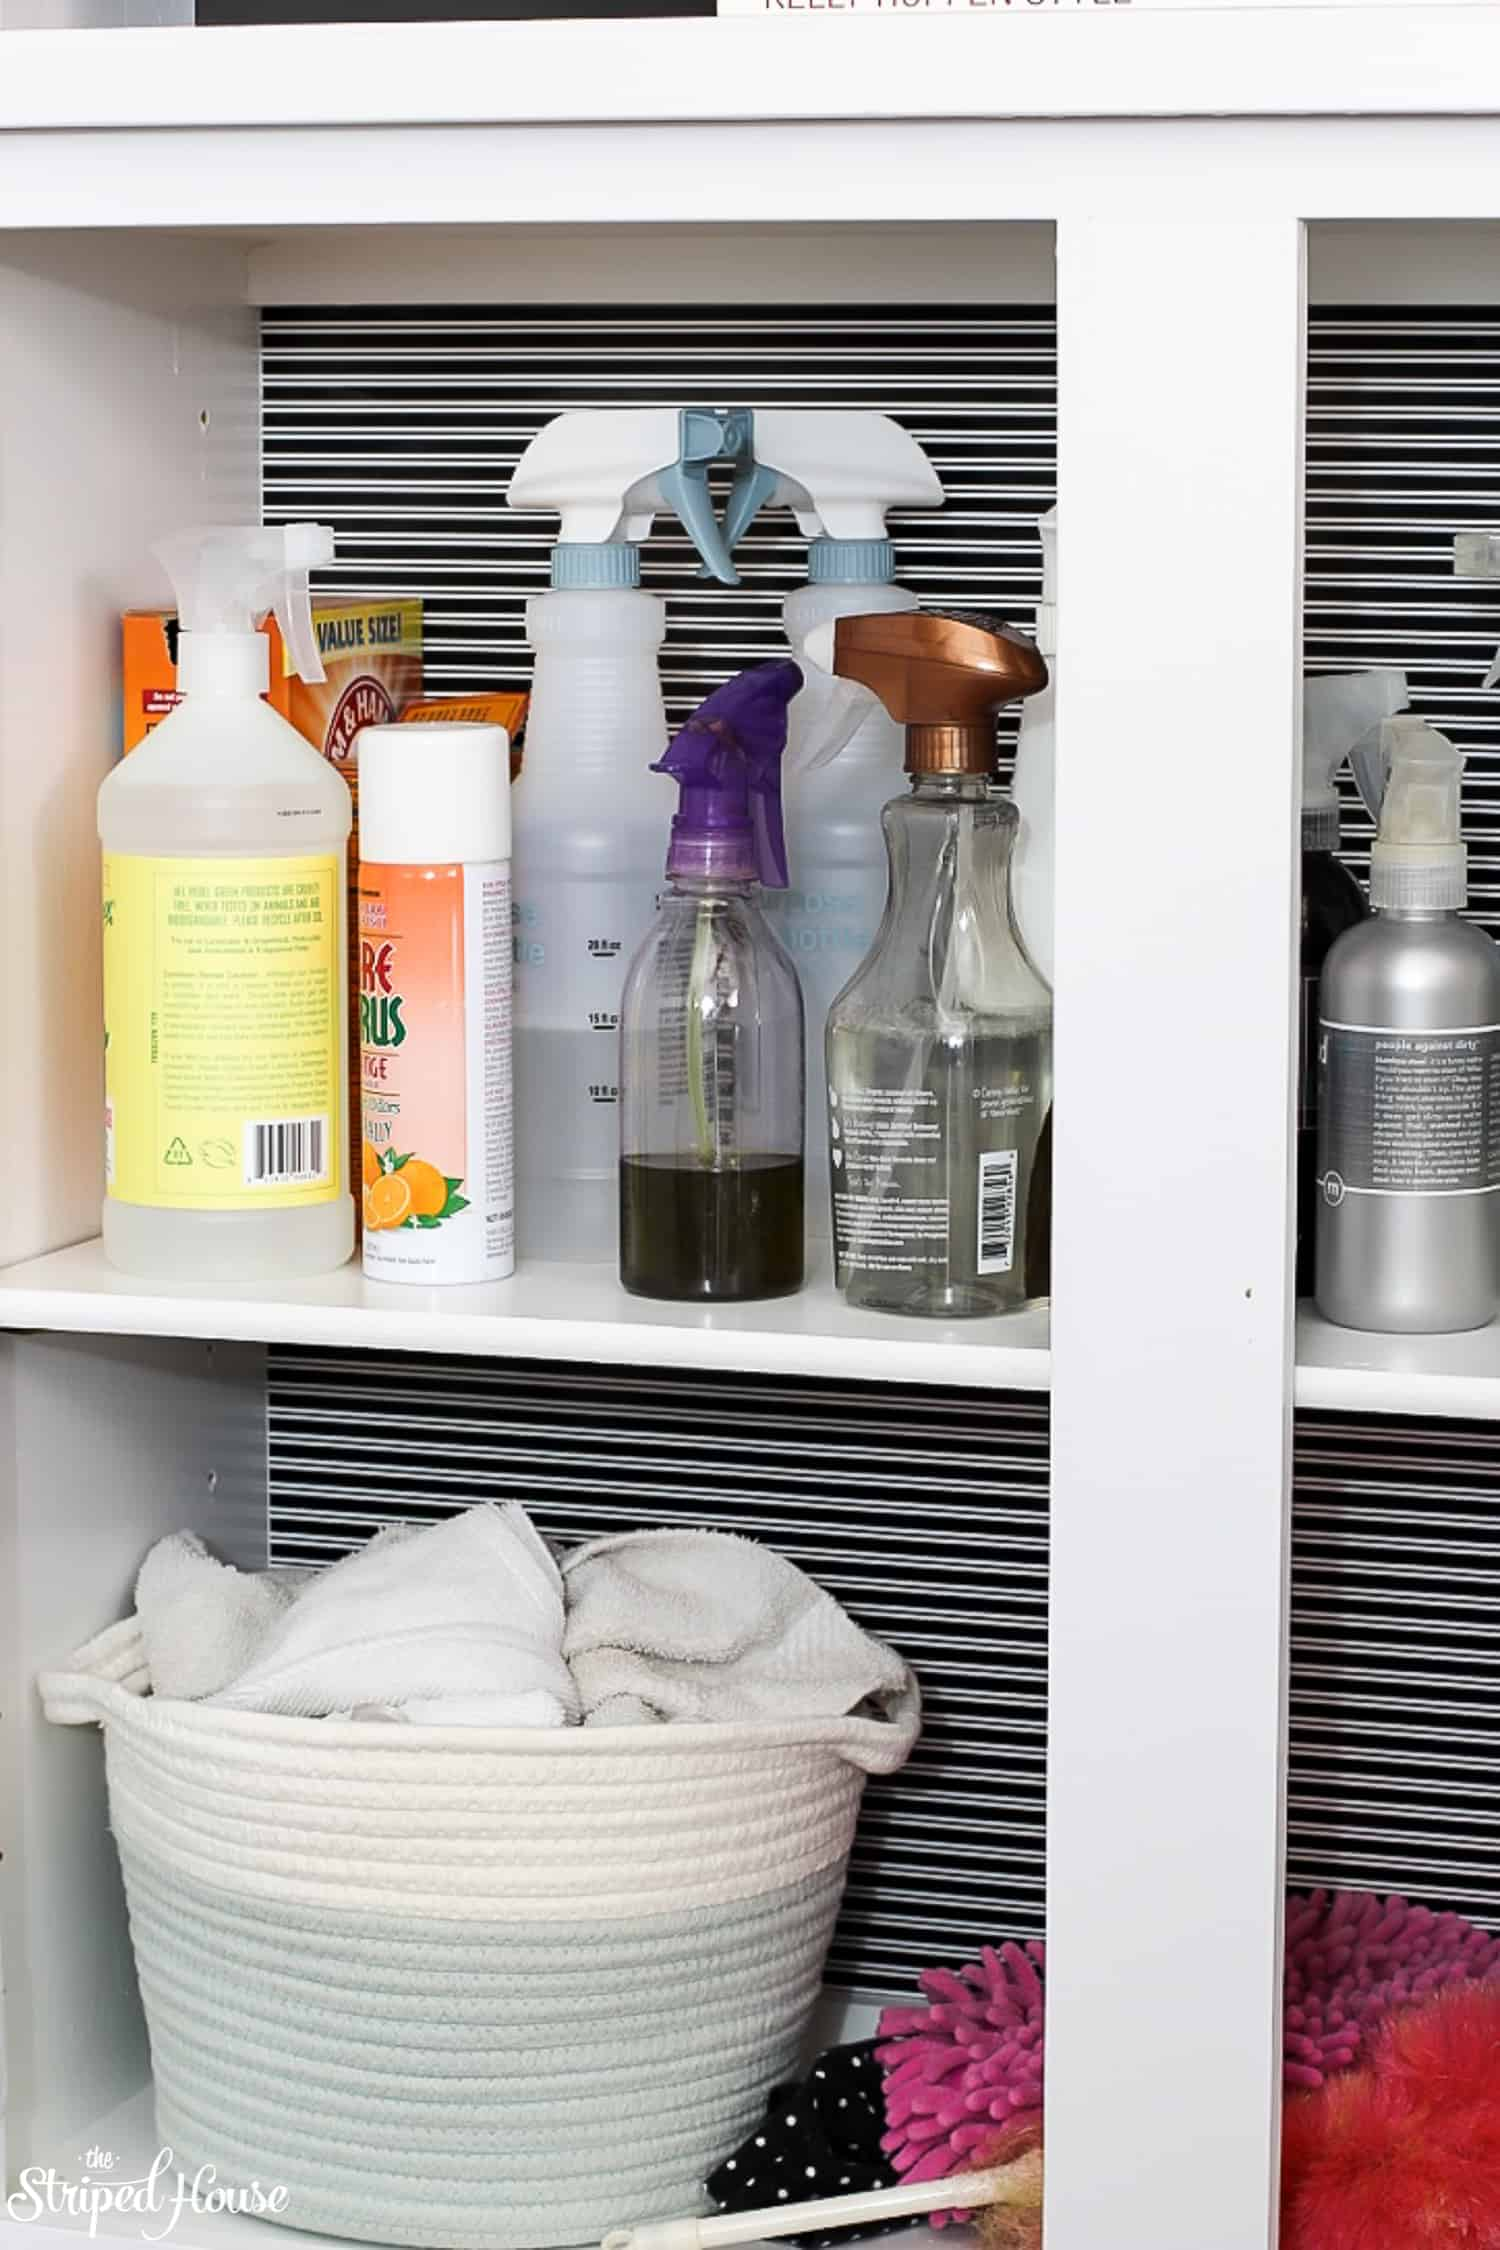 Turning a wasted cabinet into a bright, organized space for cleaning supplies.